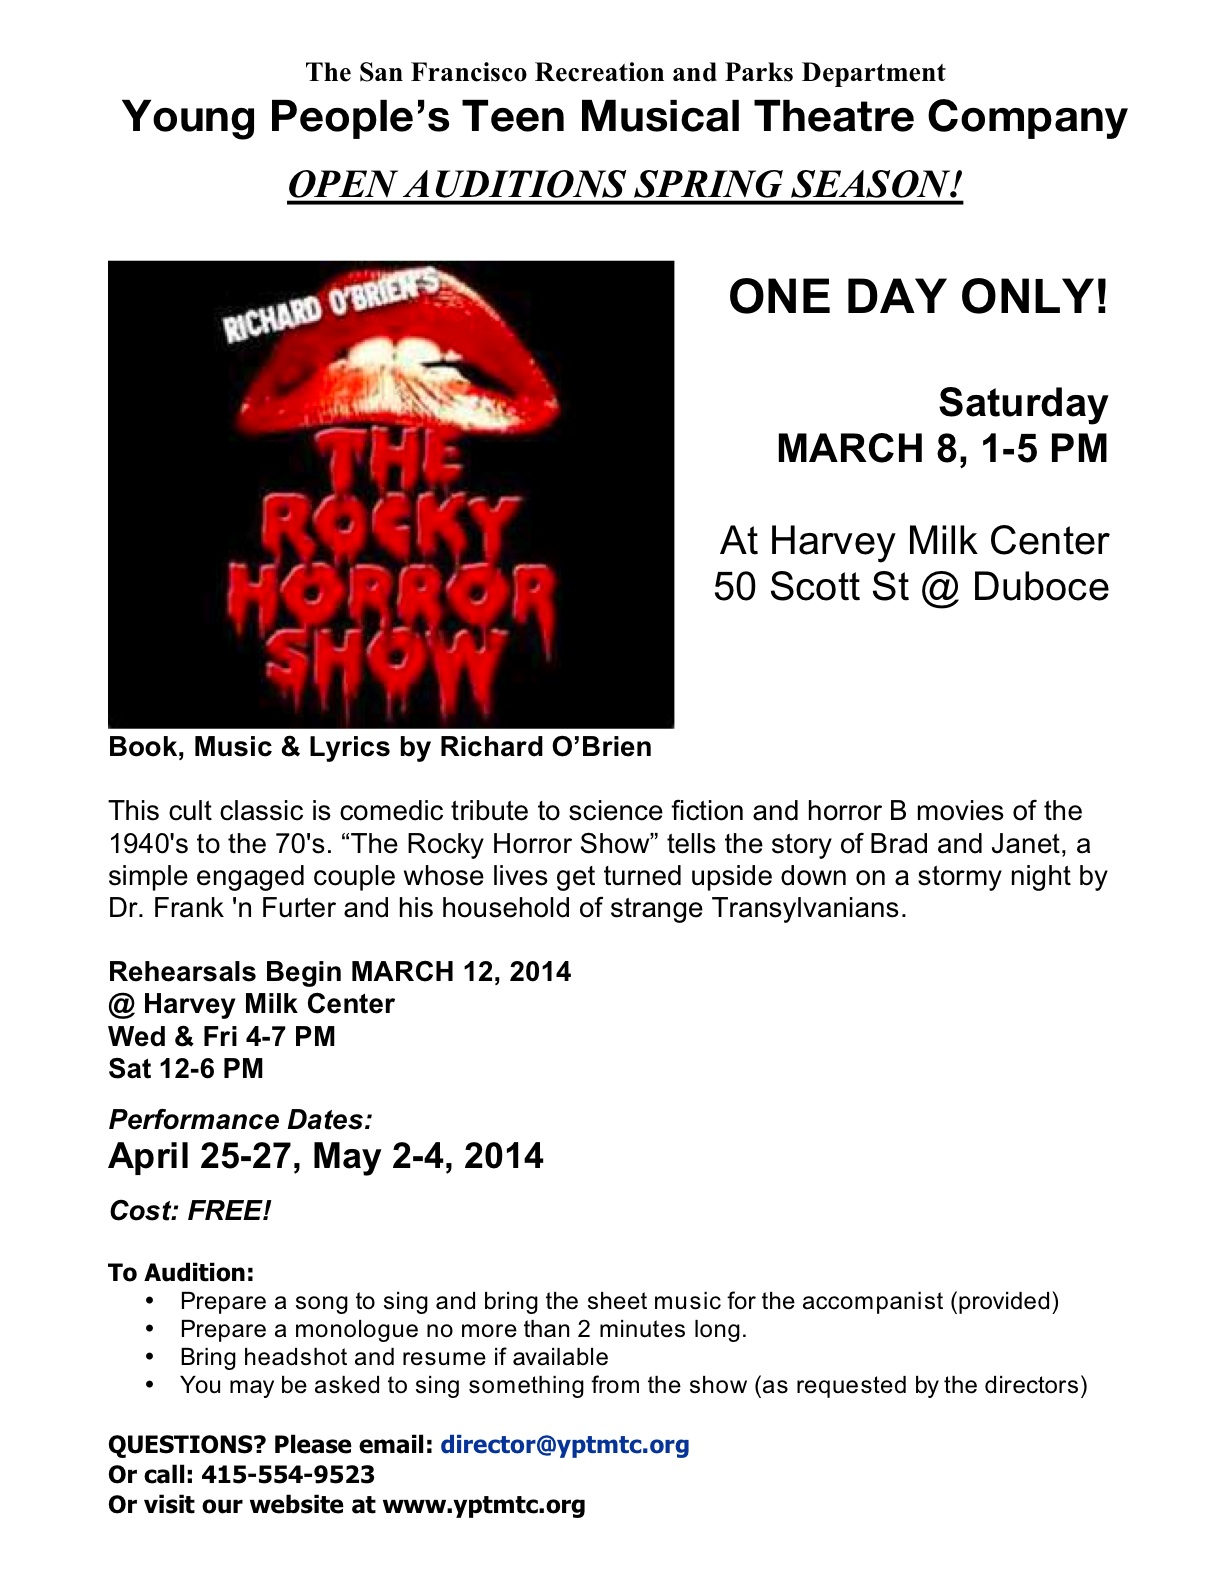 "OPEN AUDITIONS for ""THE ROCKY HORROR SHOW!"" 1 DAY ONLY - Saturday, March 8, 1-5 PM @ Harvey Milk Center"